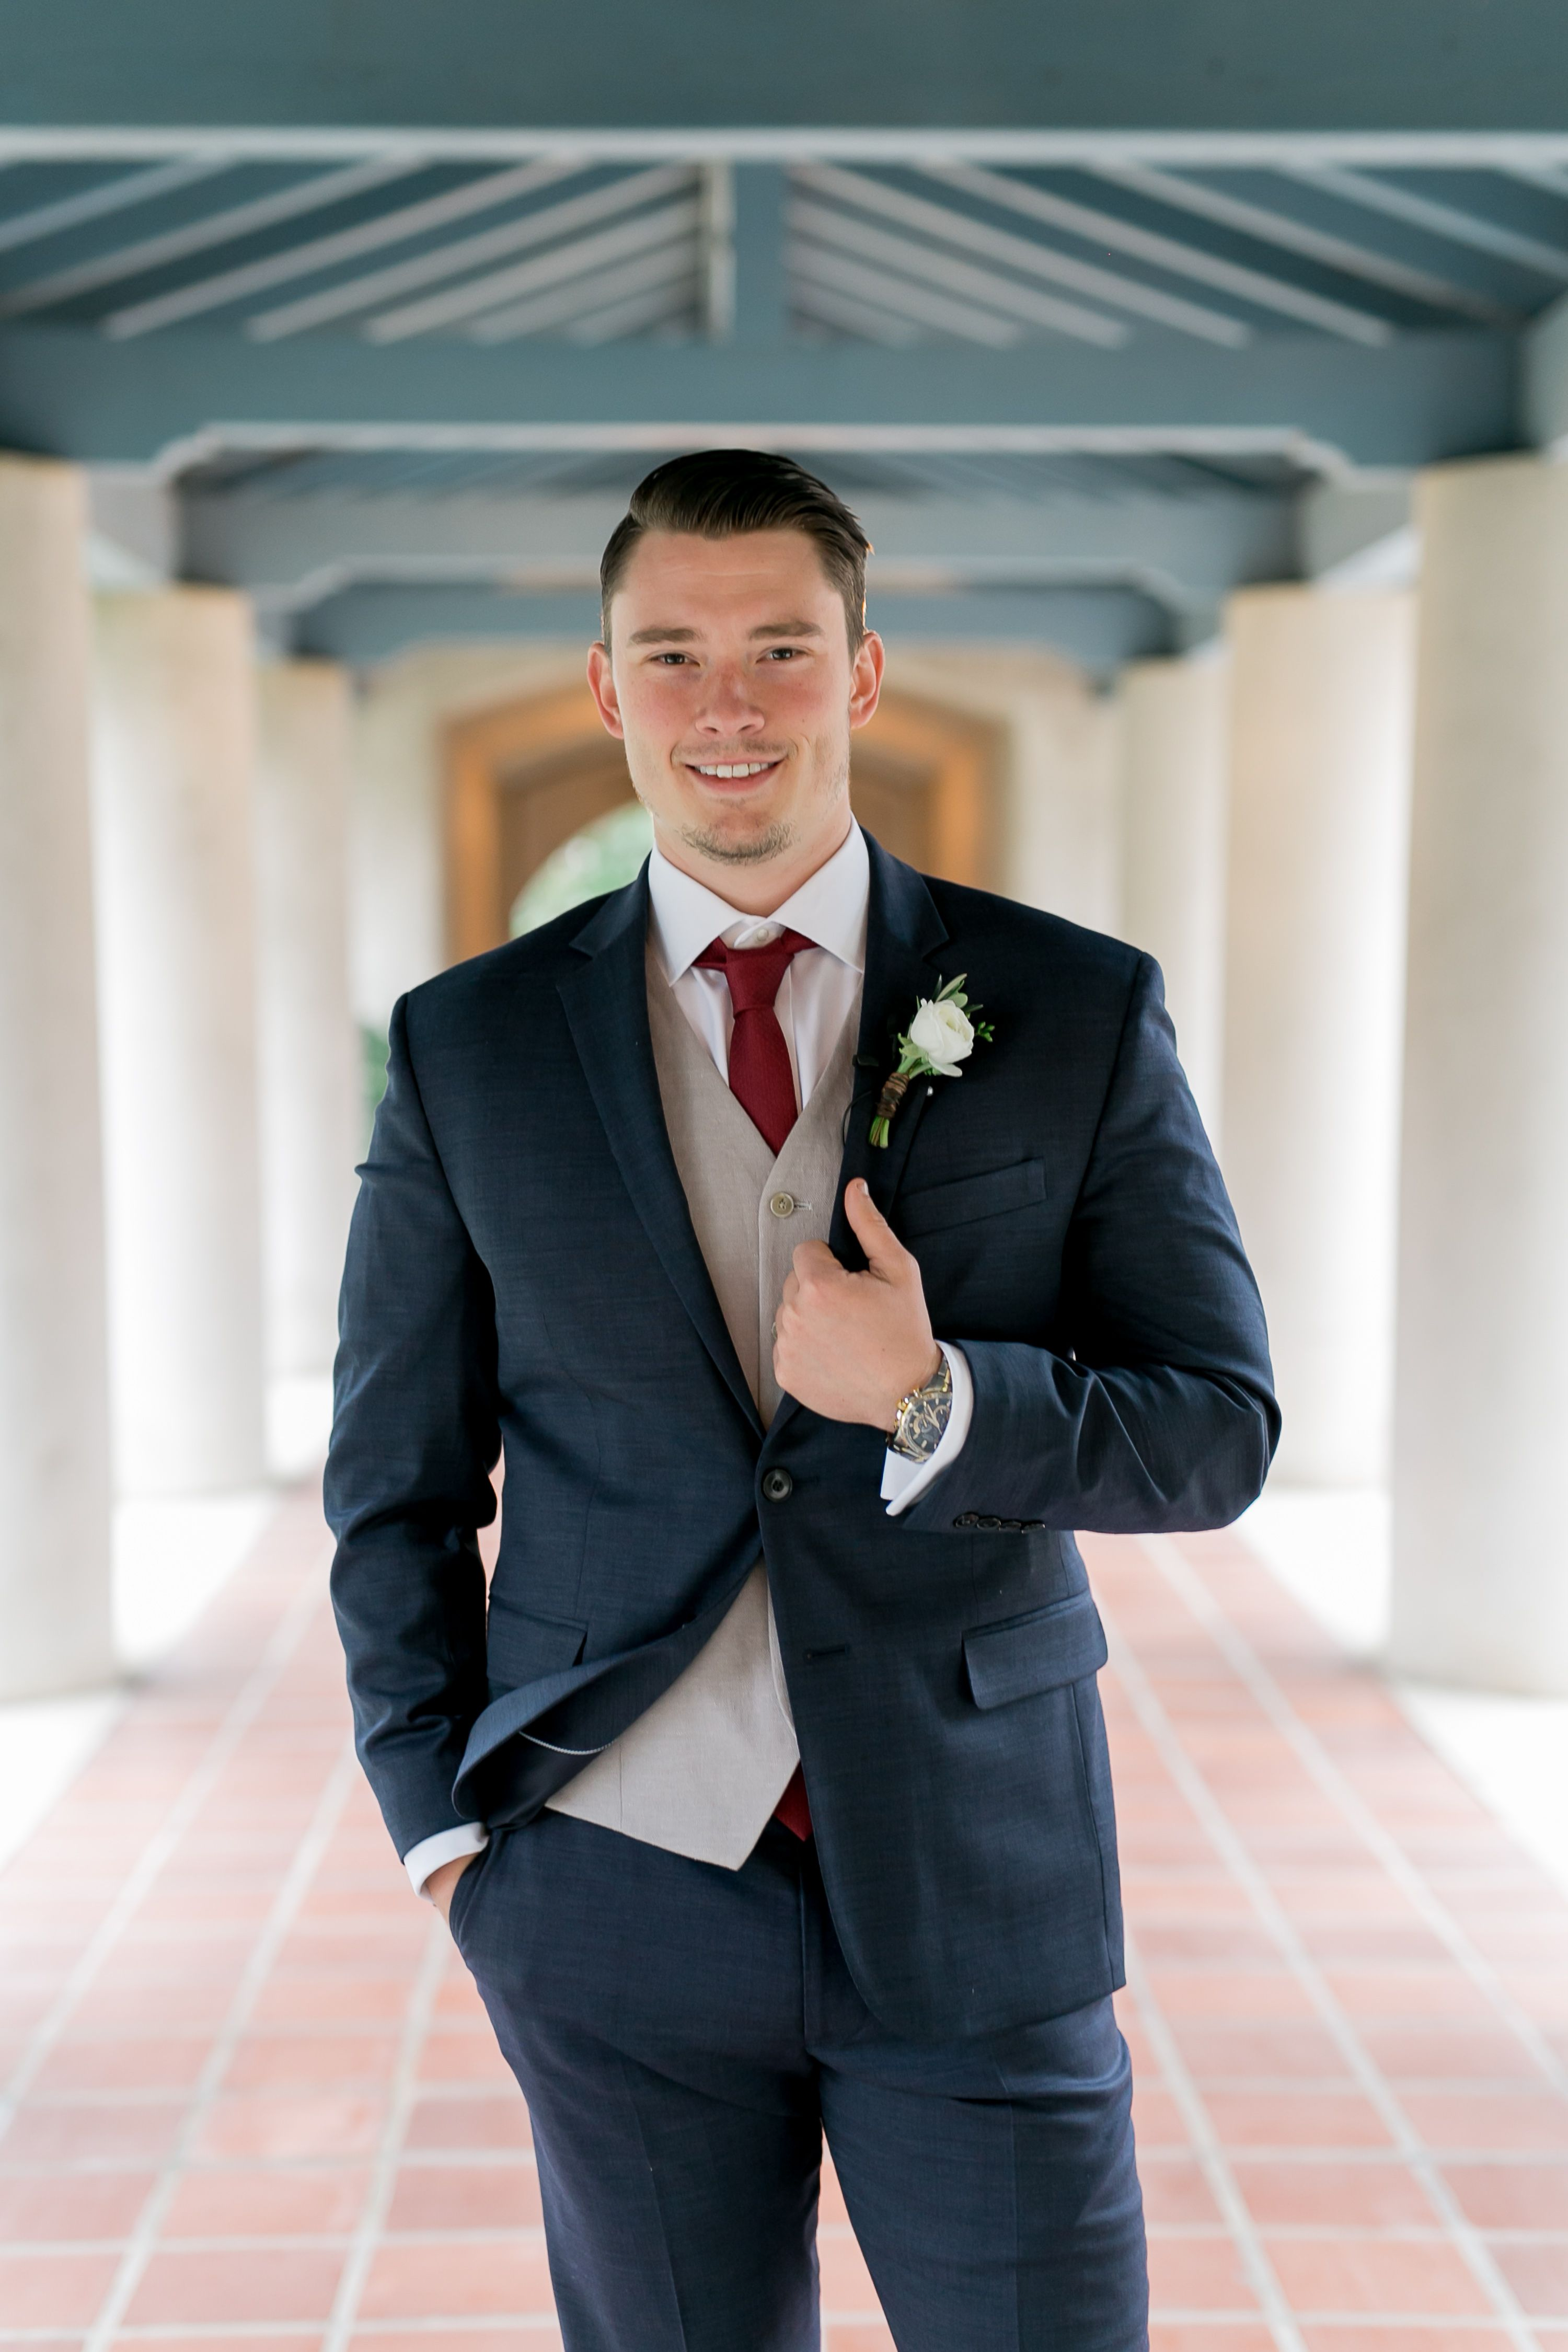 The groom wore a navy blue tuxedo complemented by the